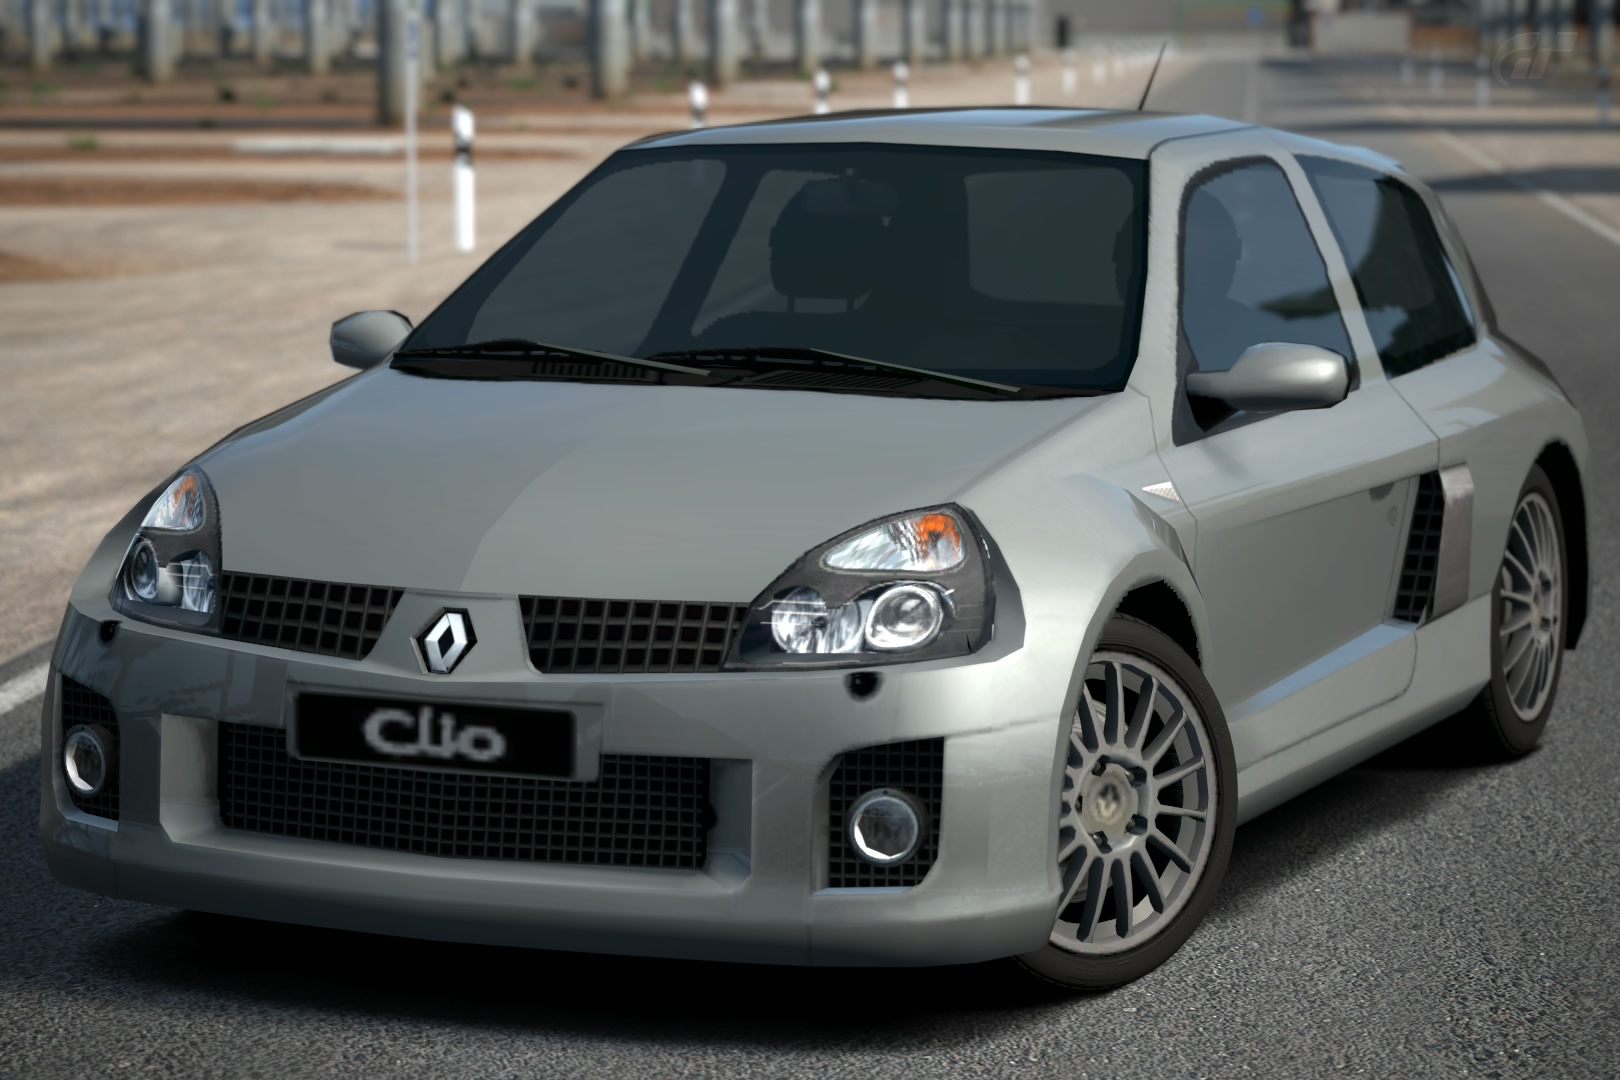 clio renault sport v6 phase 2 39 03 gran turismo wiki fandom powered by wikia. Black Bedroom Furniture Sets. Home Design Ideas